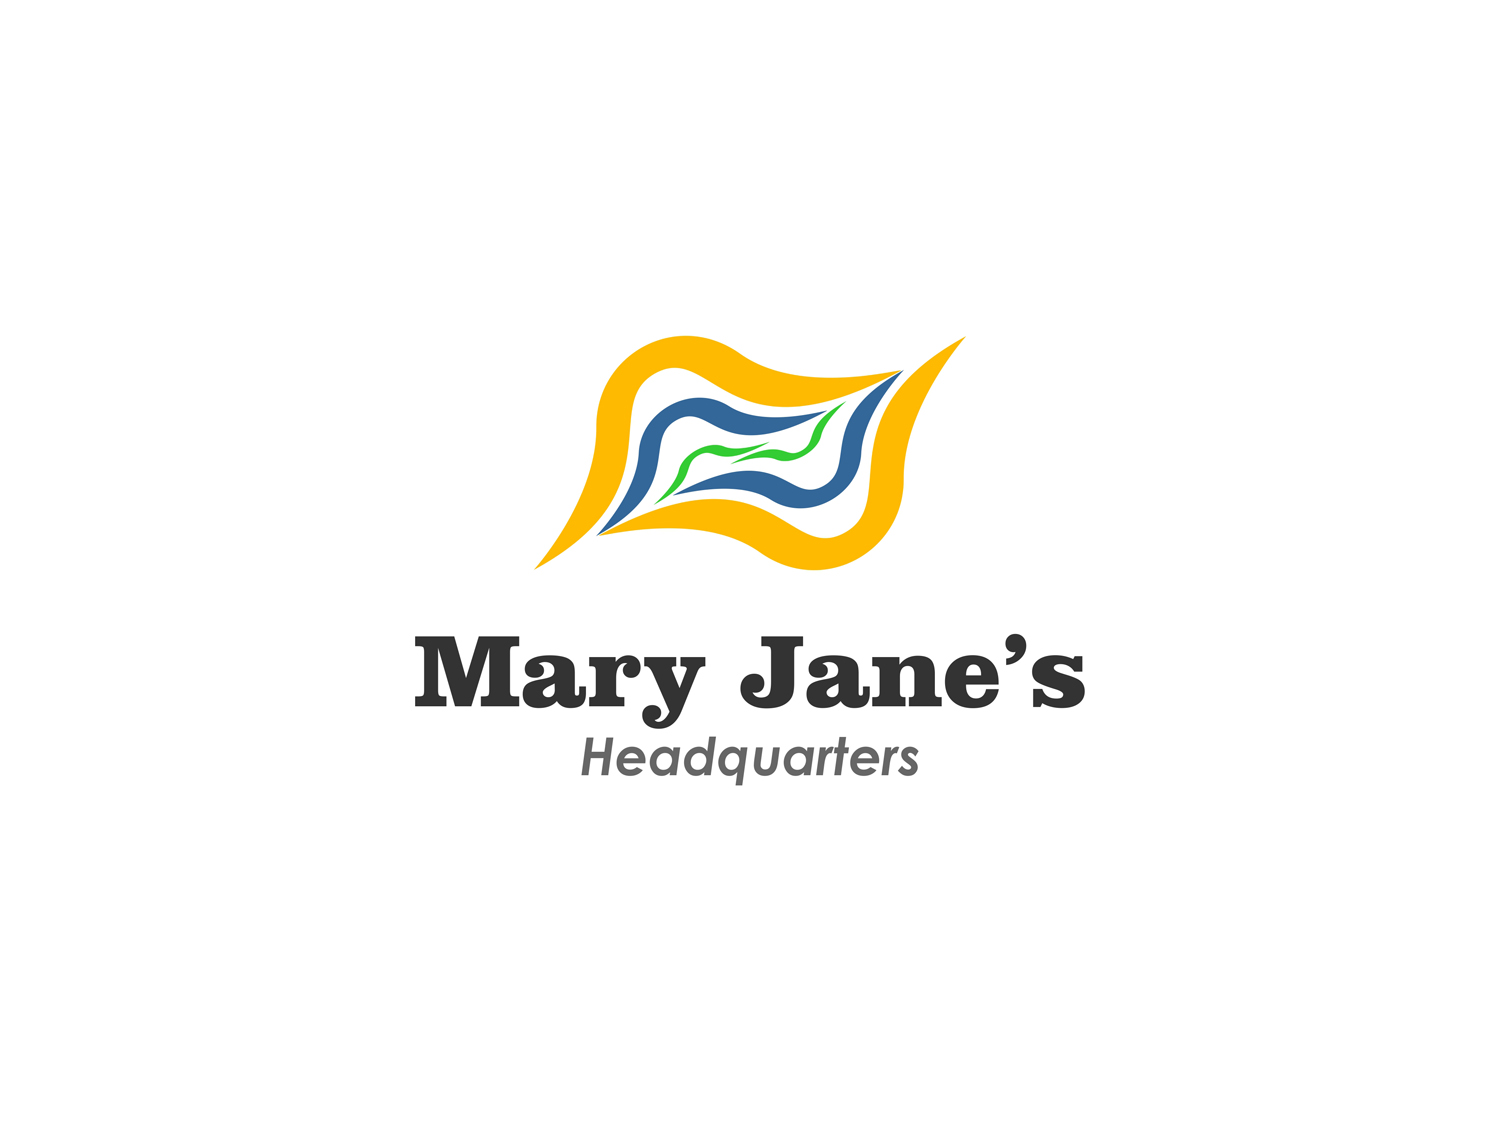 Logo Design by Qoaldjsk - Entry No. 77 in the Logo Design Contest Mary Jane's Headquarters Logo Design.